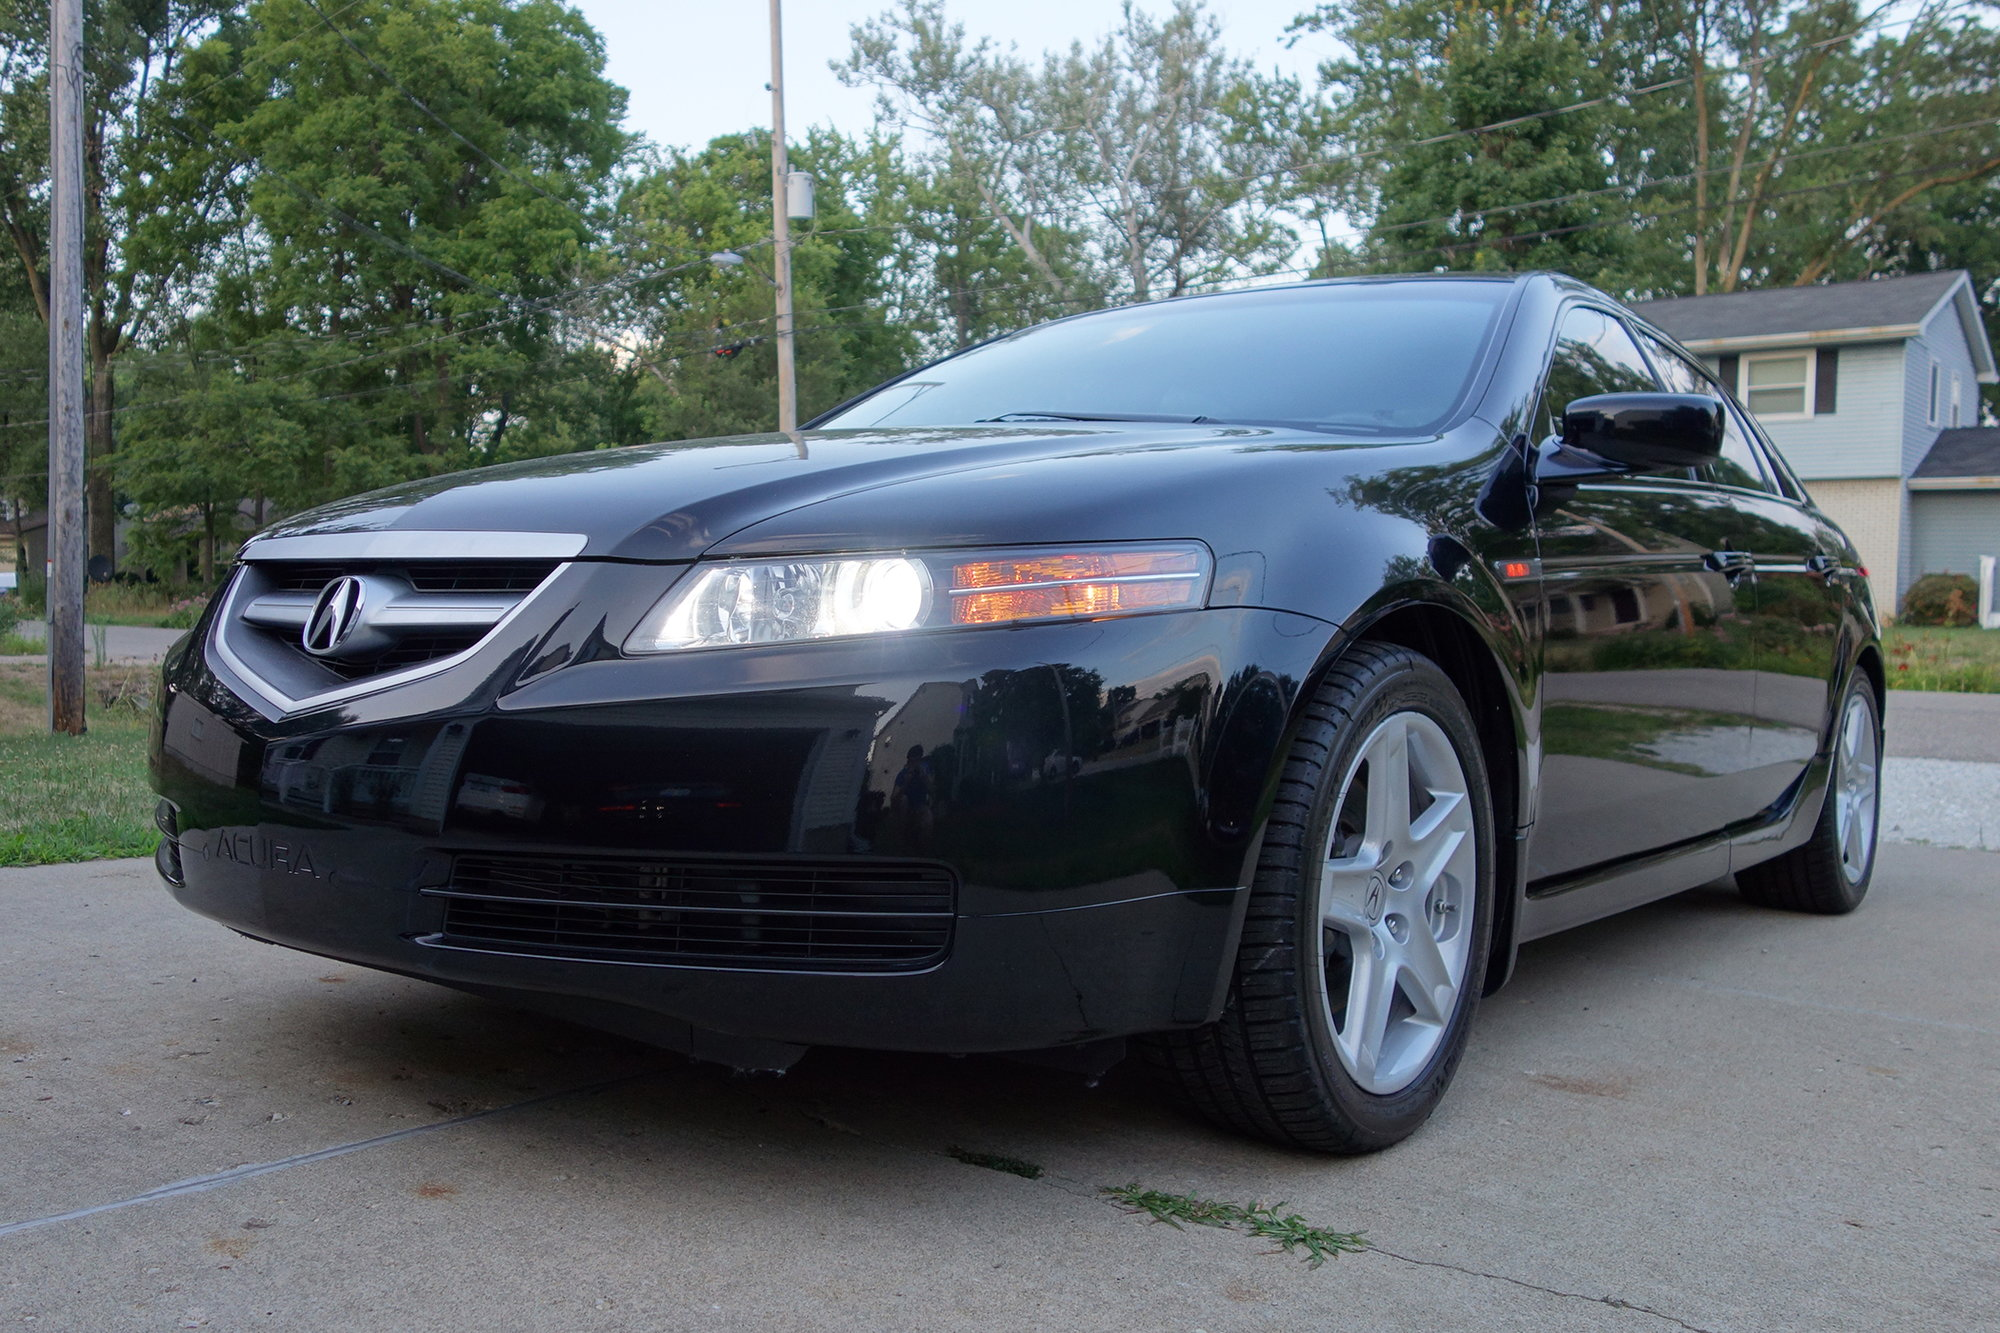 SOLD: 2006 Acura TL, 6-Speed Manual, 72,175 miles ...